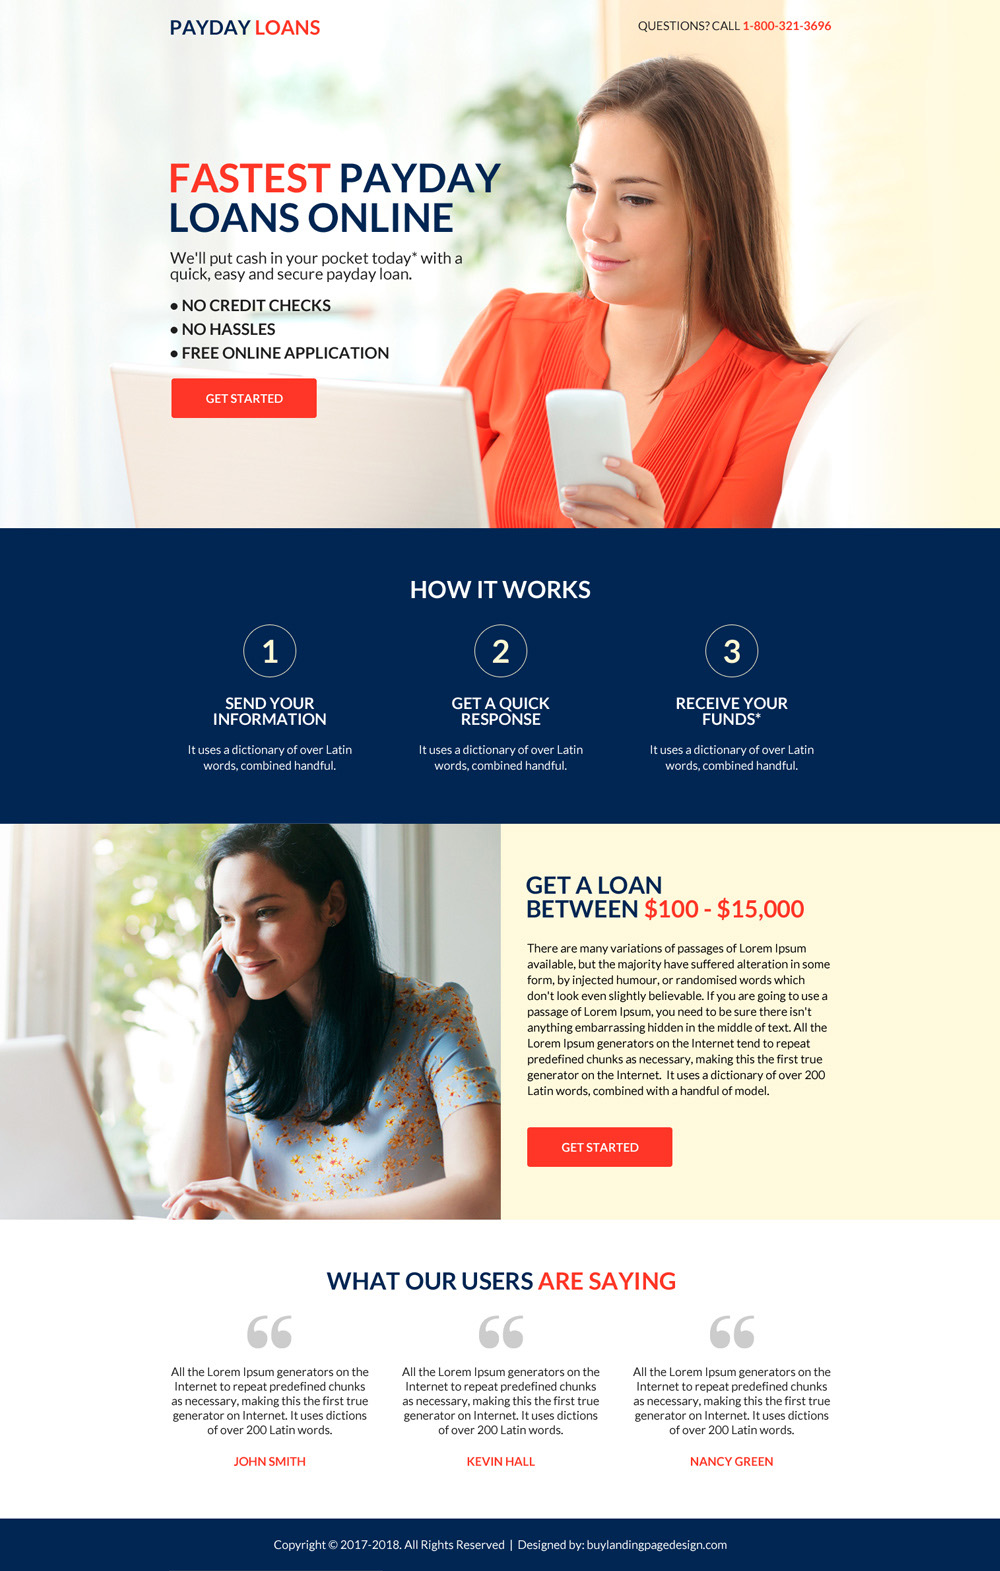 fastest online payday loan mini landing page design 038